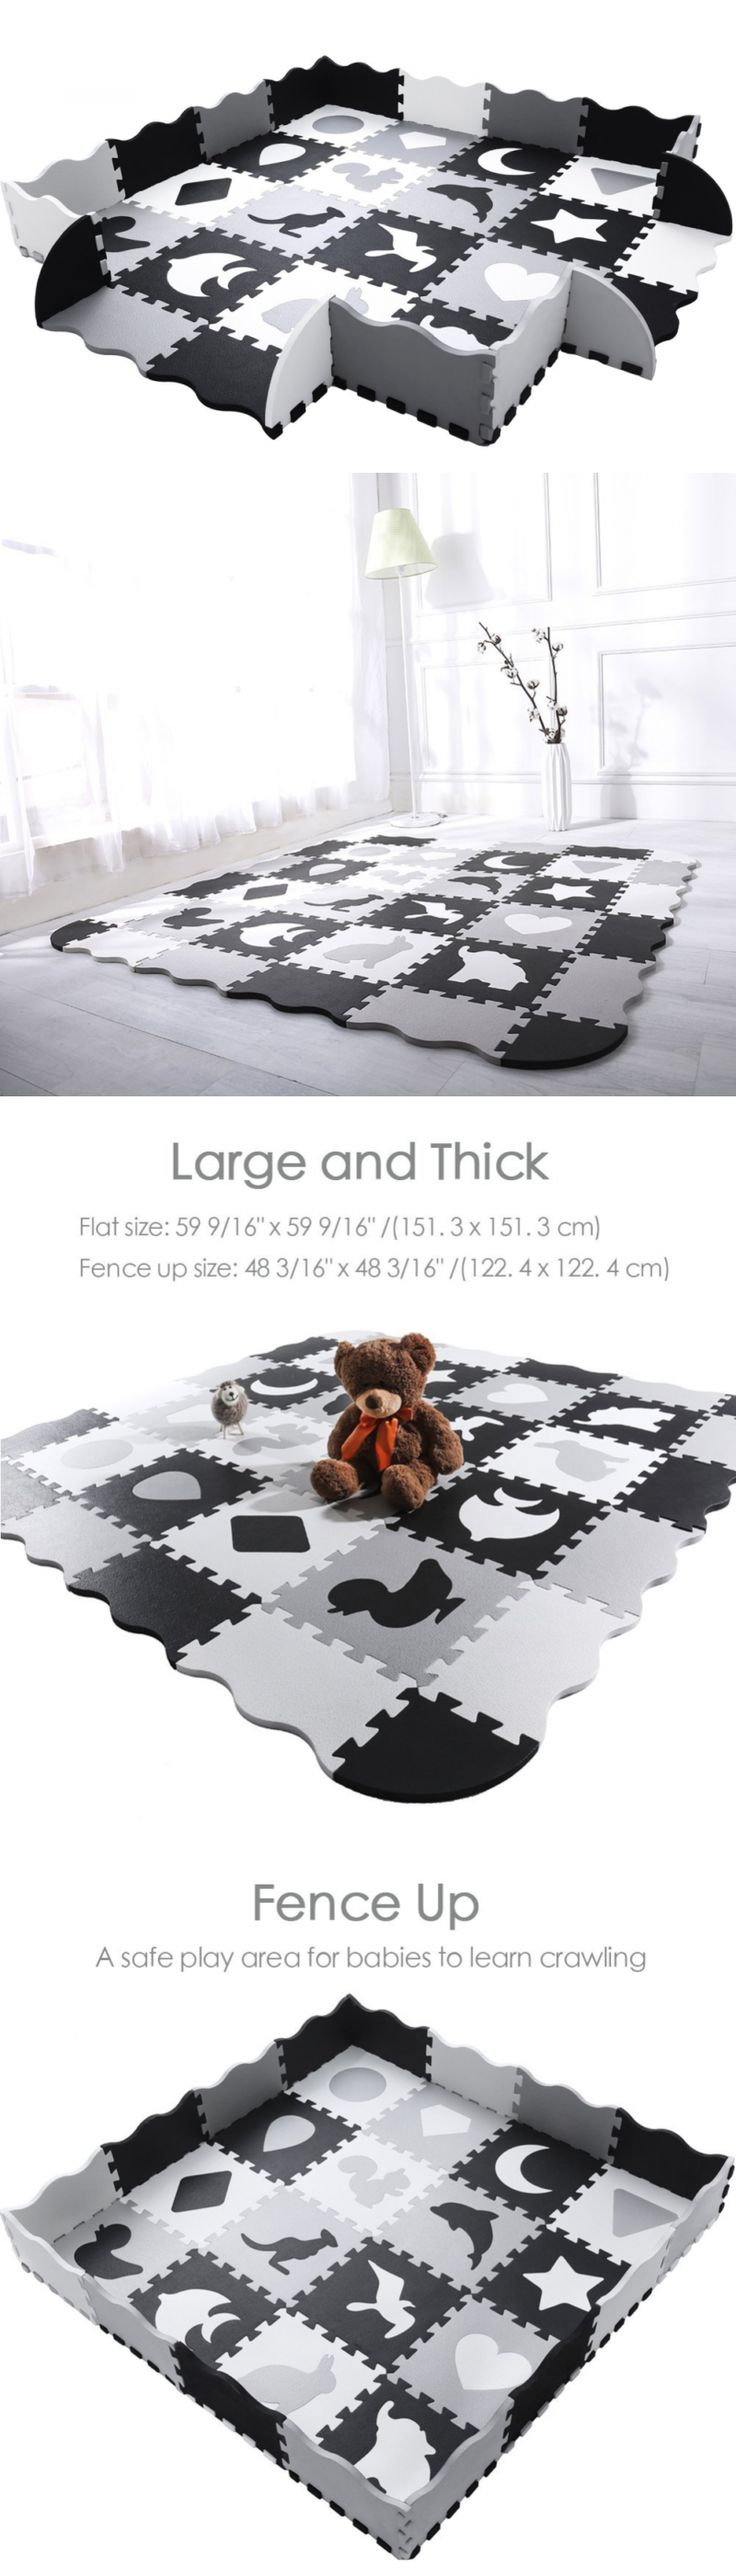 Best 25 foam floor tiles ideas on pinterest interlocking floor baby gyms and play mats 19069 baby play mat with fence superjare thick dailygadgetfo Images